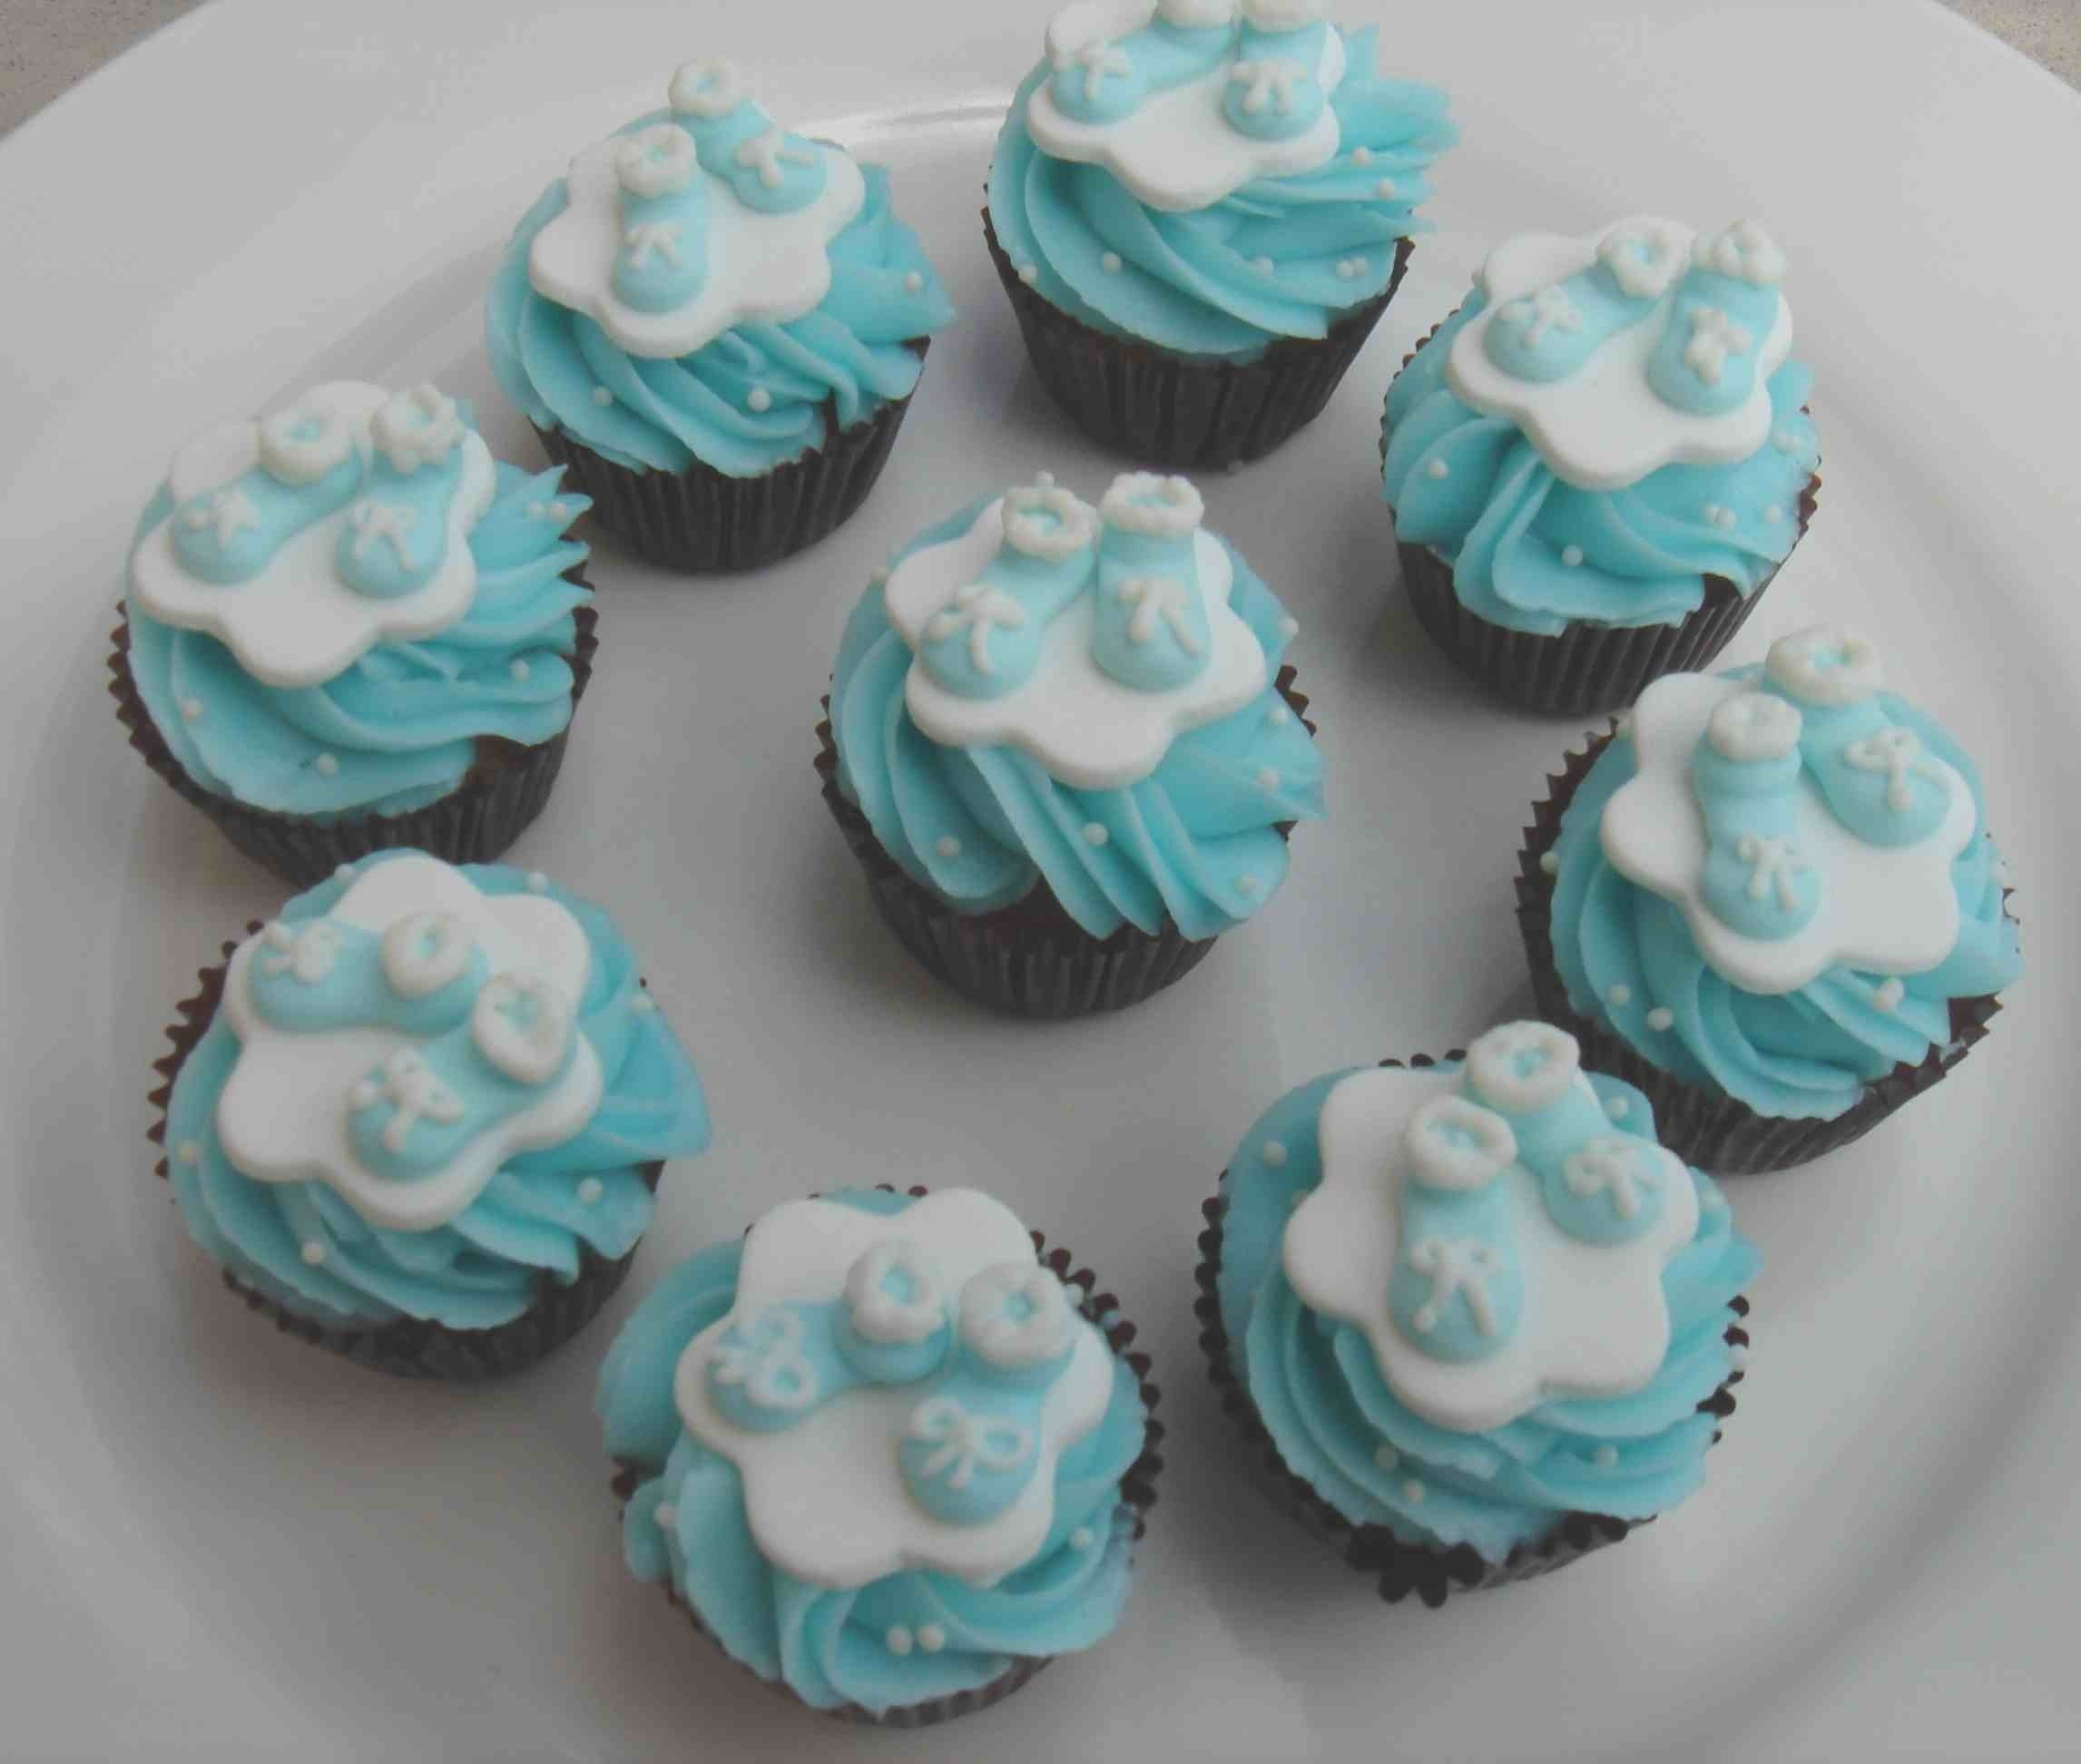 10 Fantastic Boy Baby Shower Cupcake Ideas babycupcakes google search cakes and cupcakes pinterest baby